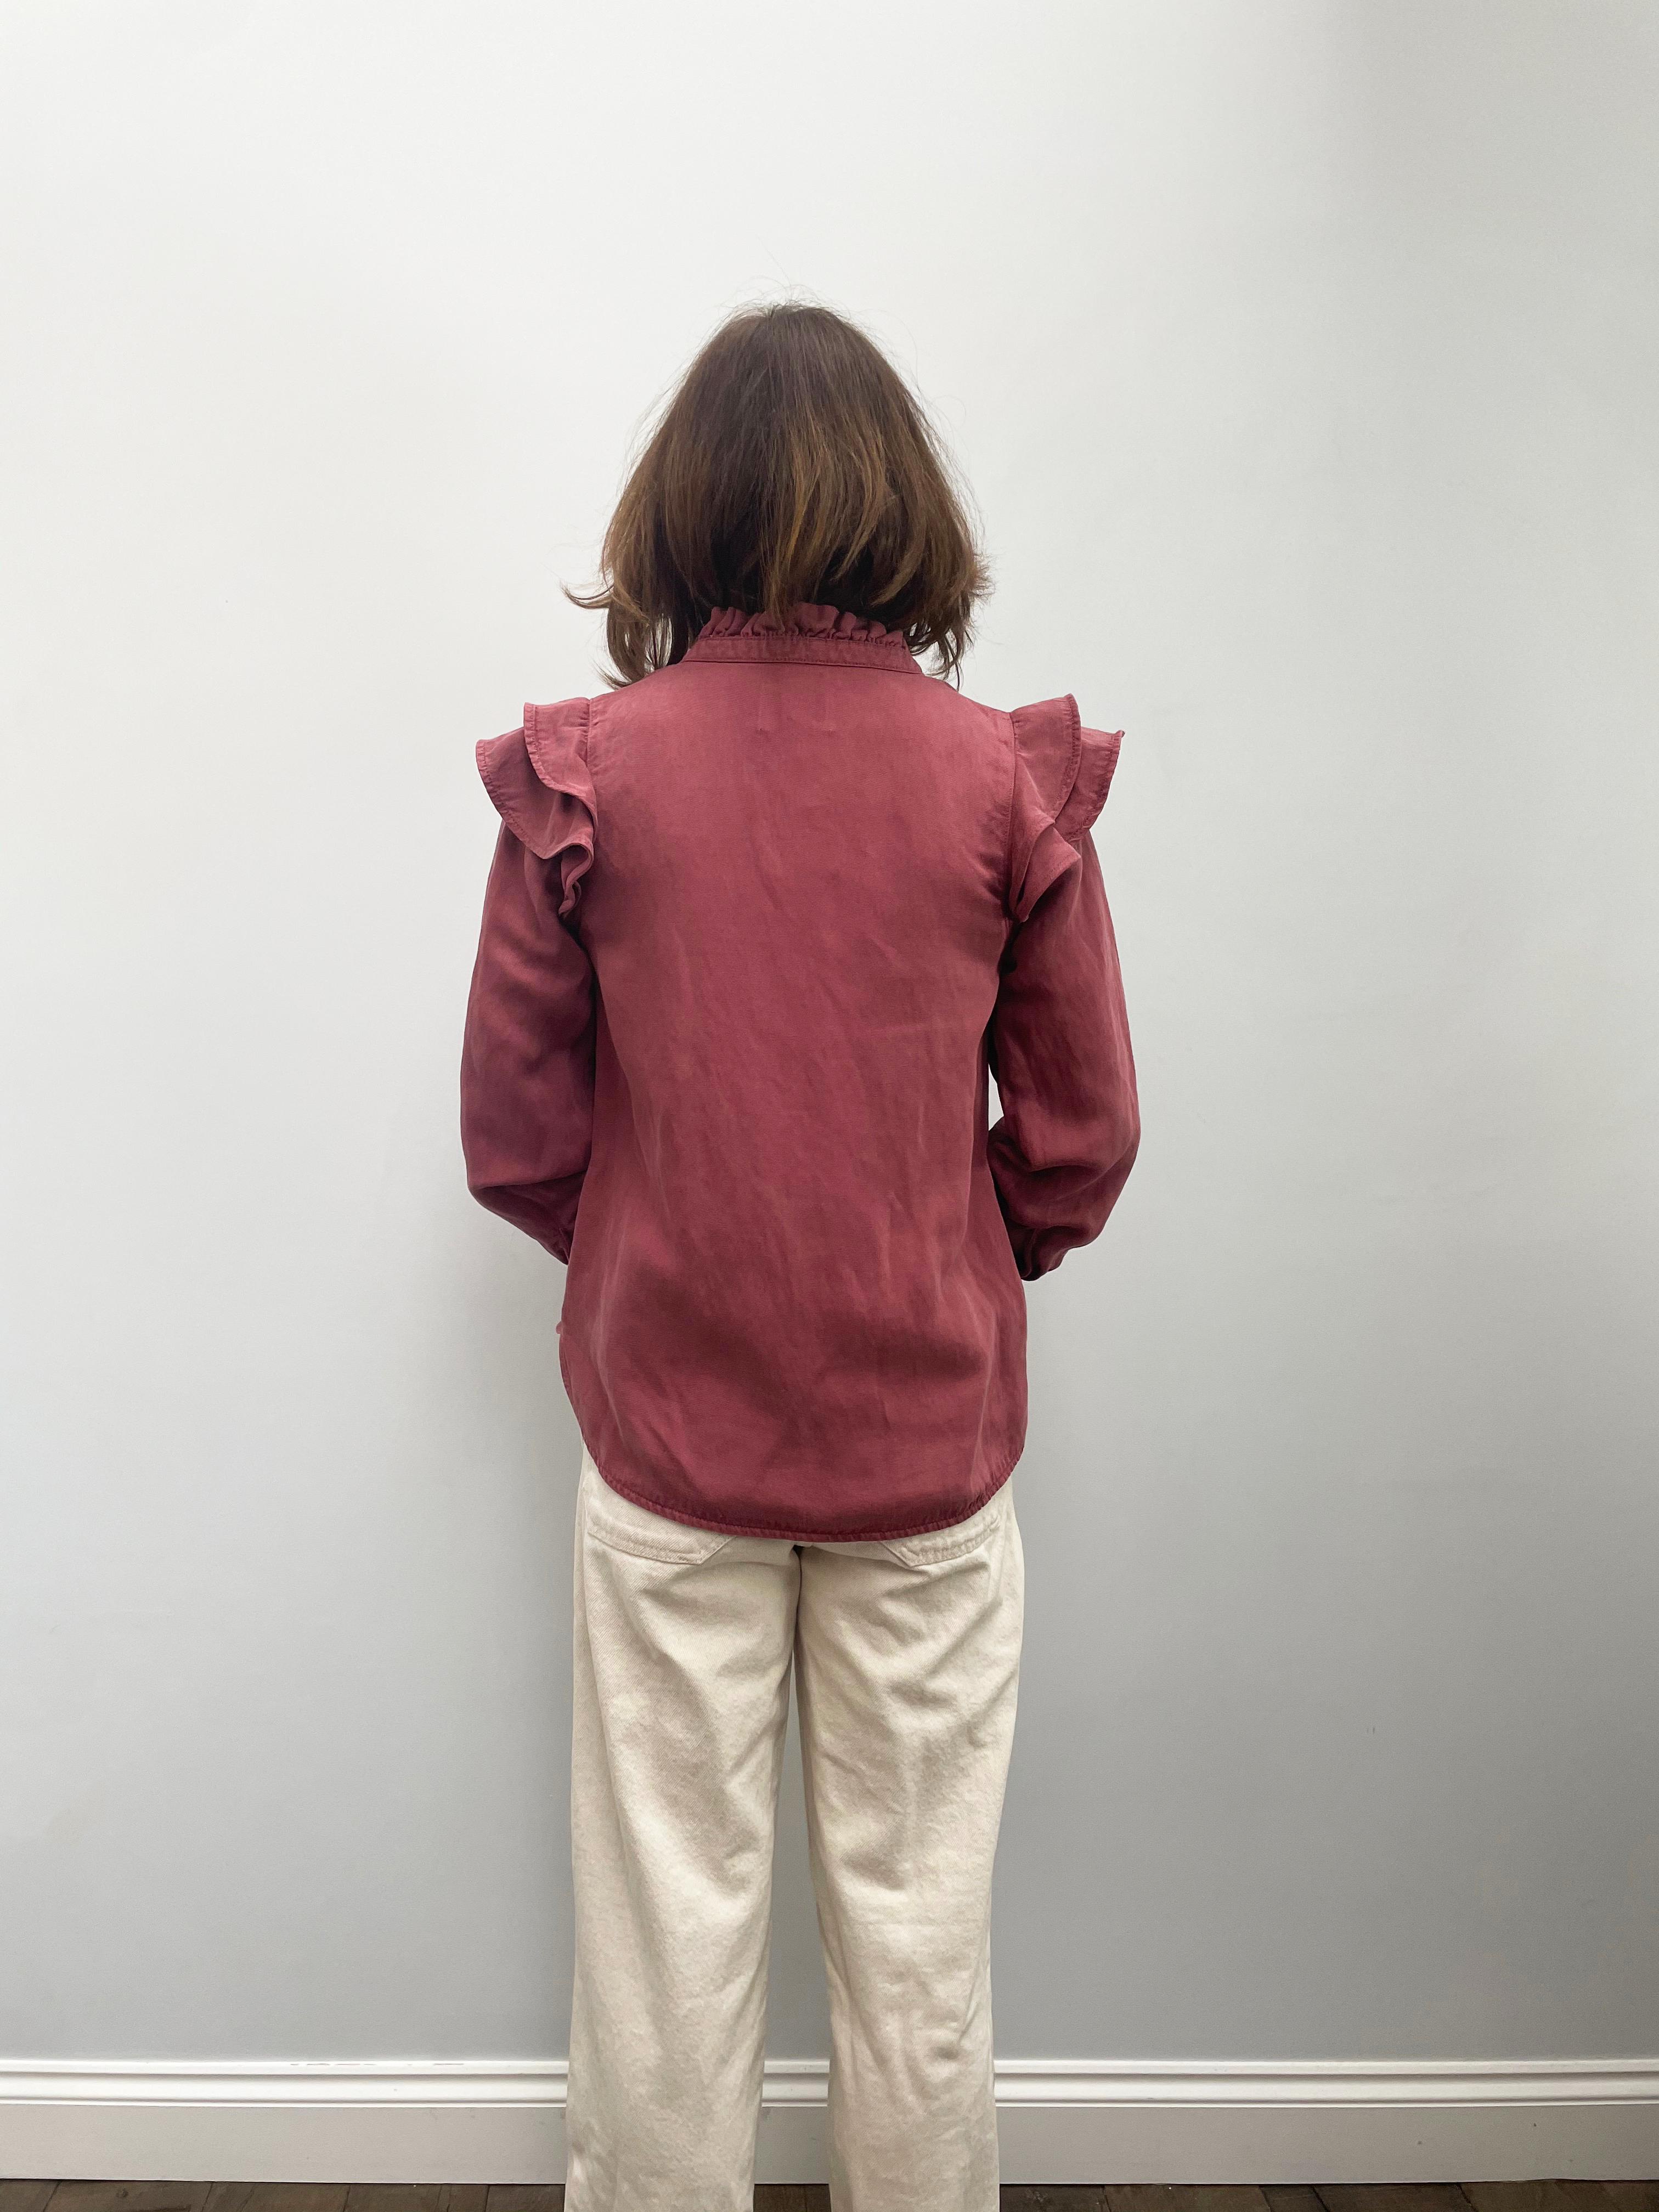 SEC.F Bella Shirt in Roan Rouge